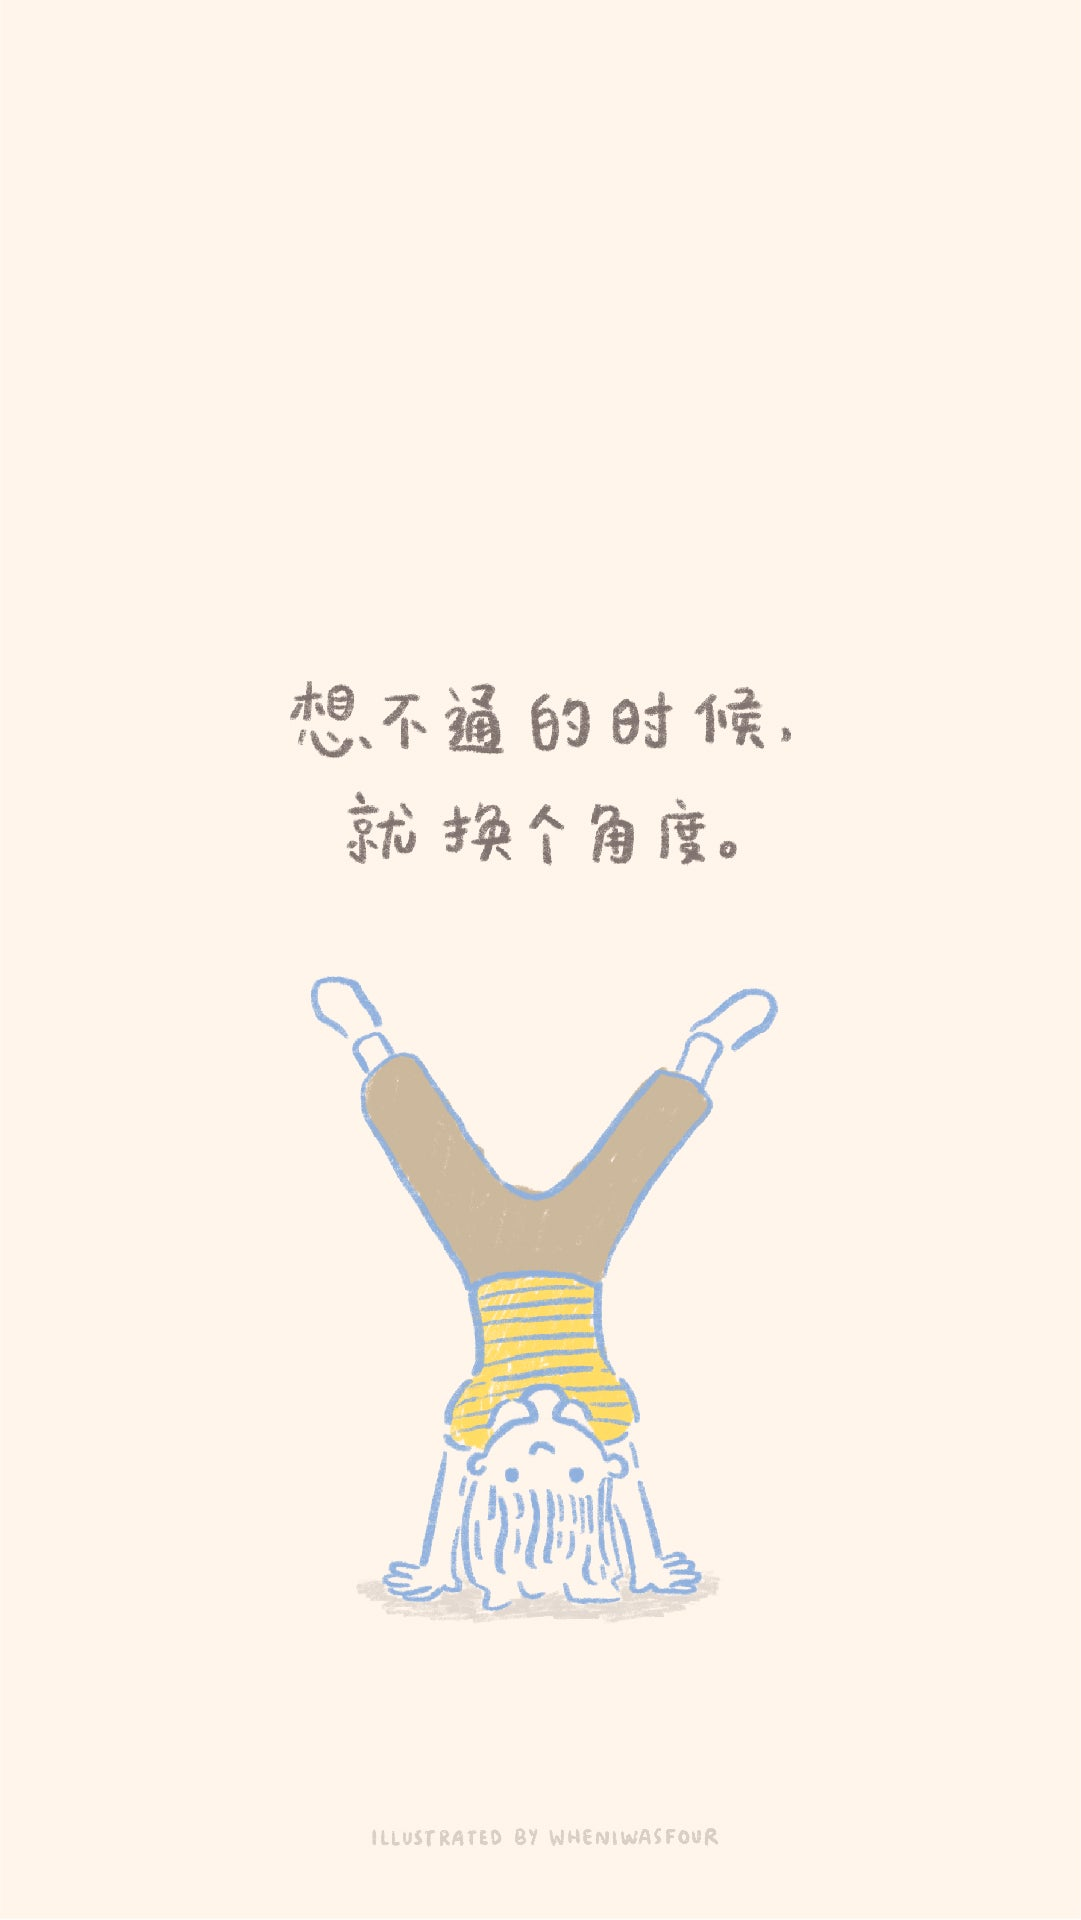 phone wallpaper of a digital illustration of a chinese verse about thinking from another angle to breakthrough